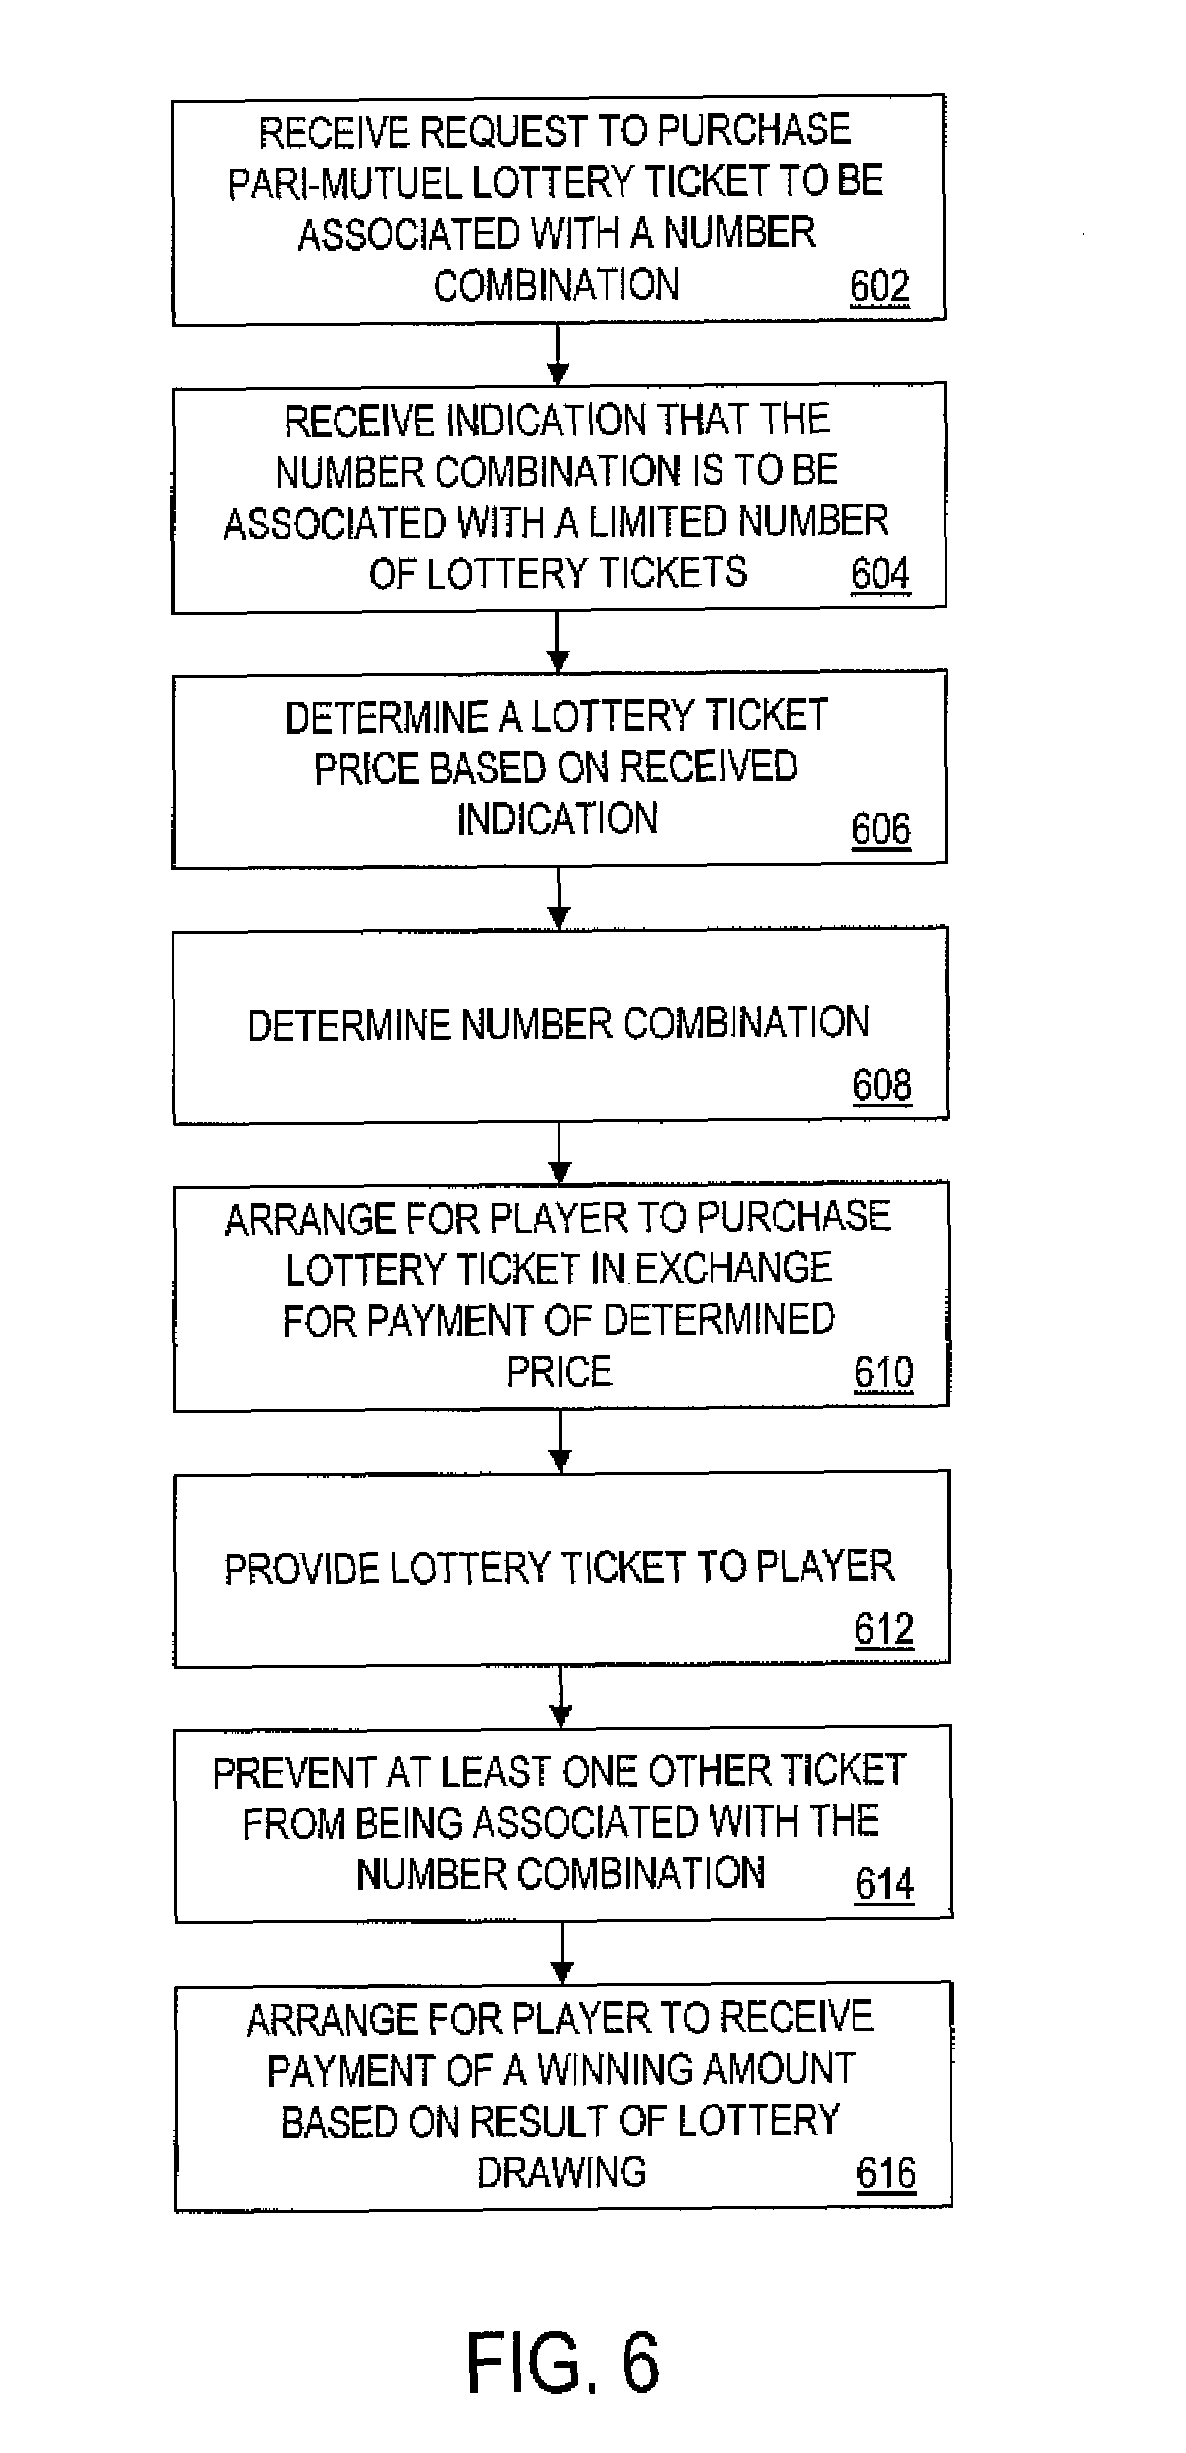 William hill irish lottery patent illegal gambling crimes